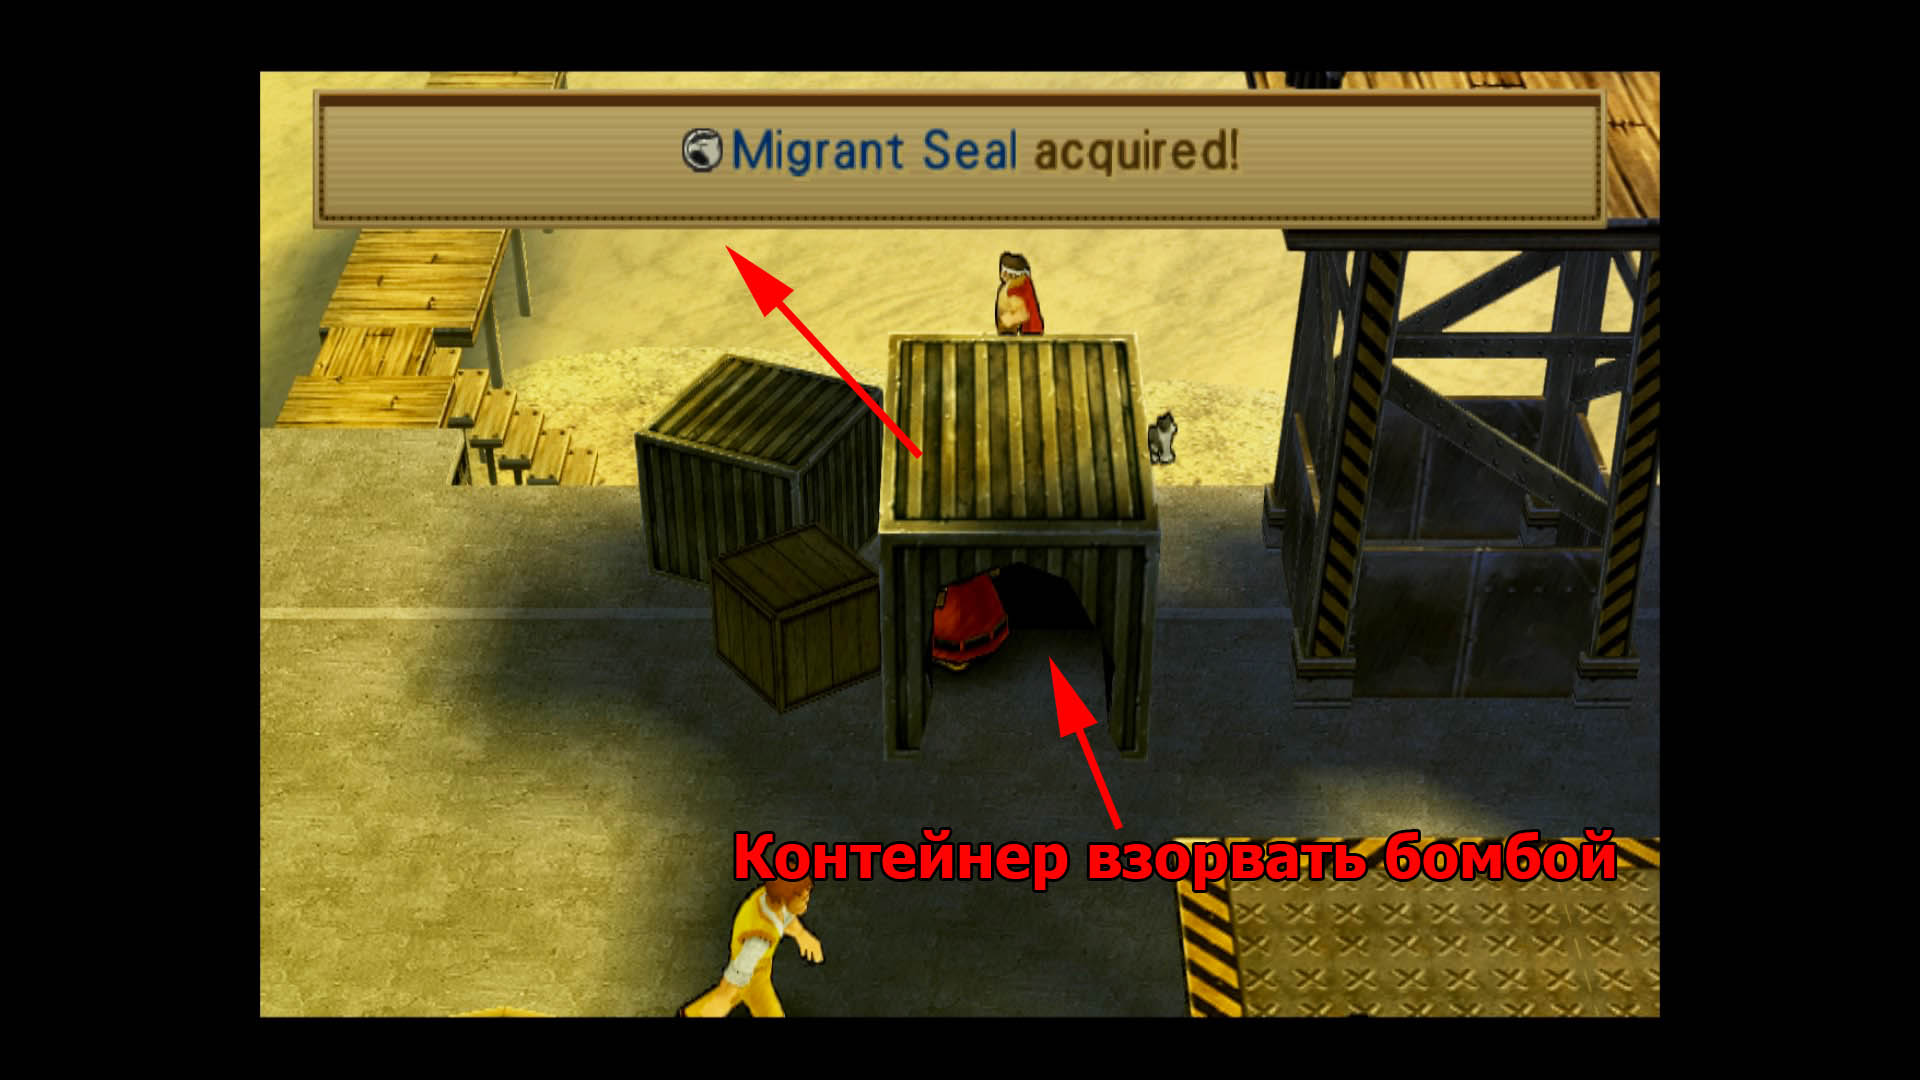 Wild Arms 3 Jolly Roger Контейнер с Migrant Seal